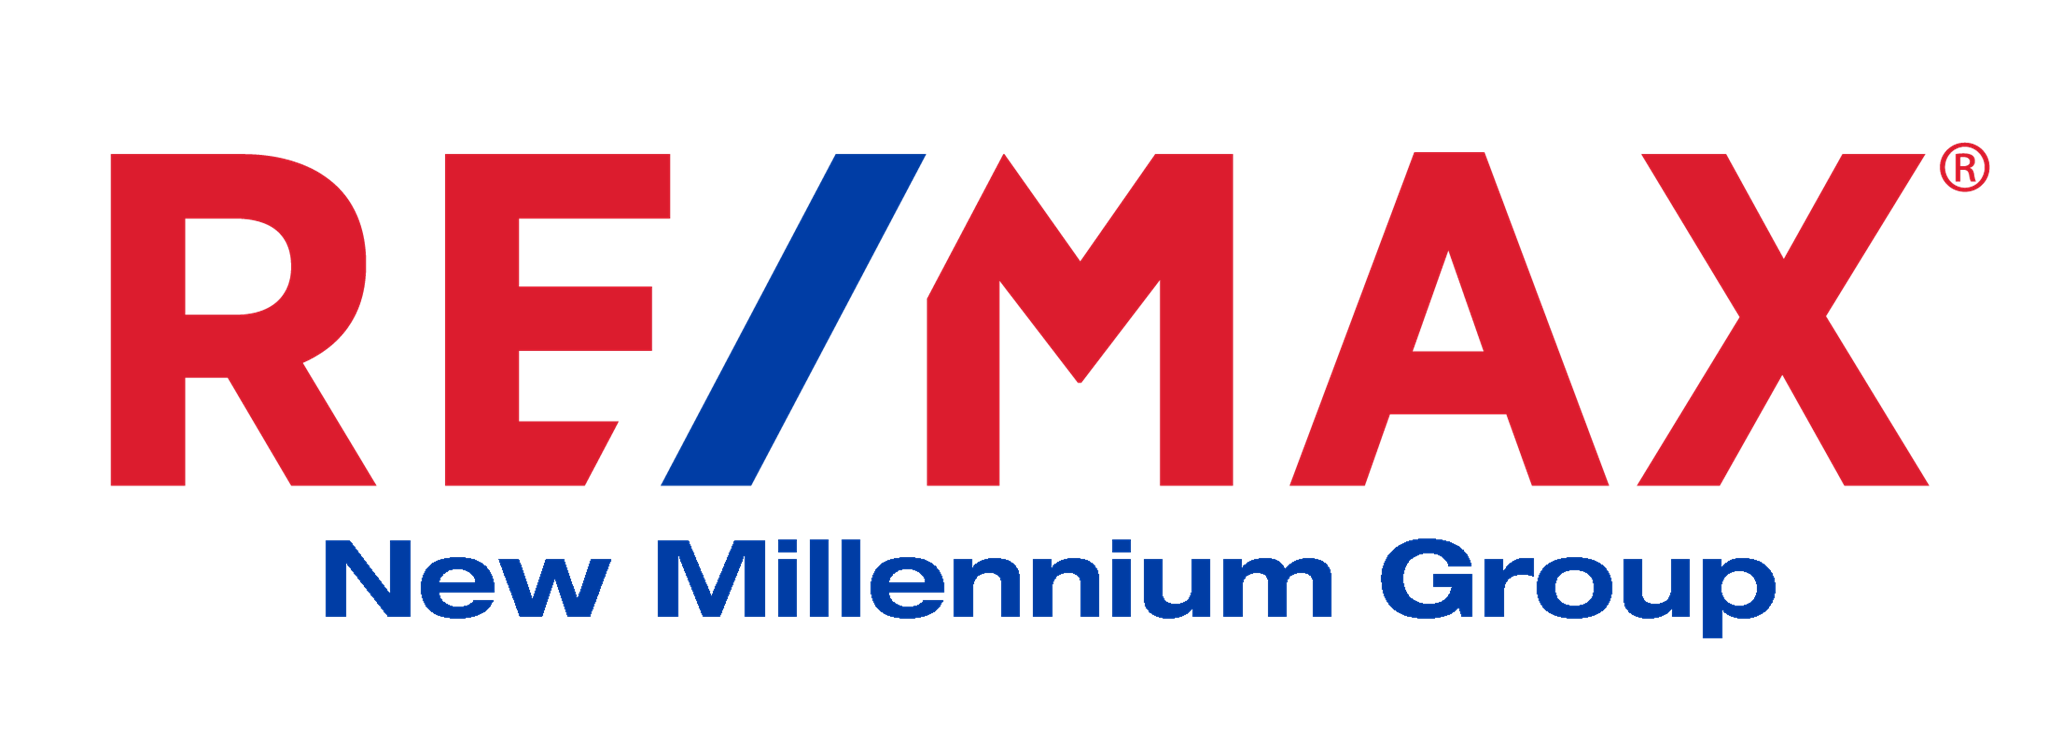 RE/MAX New Millennium Group